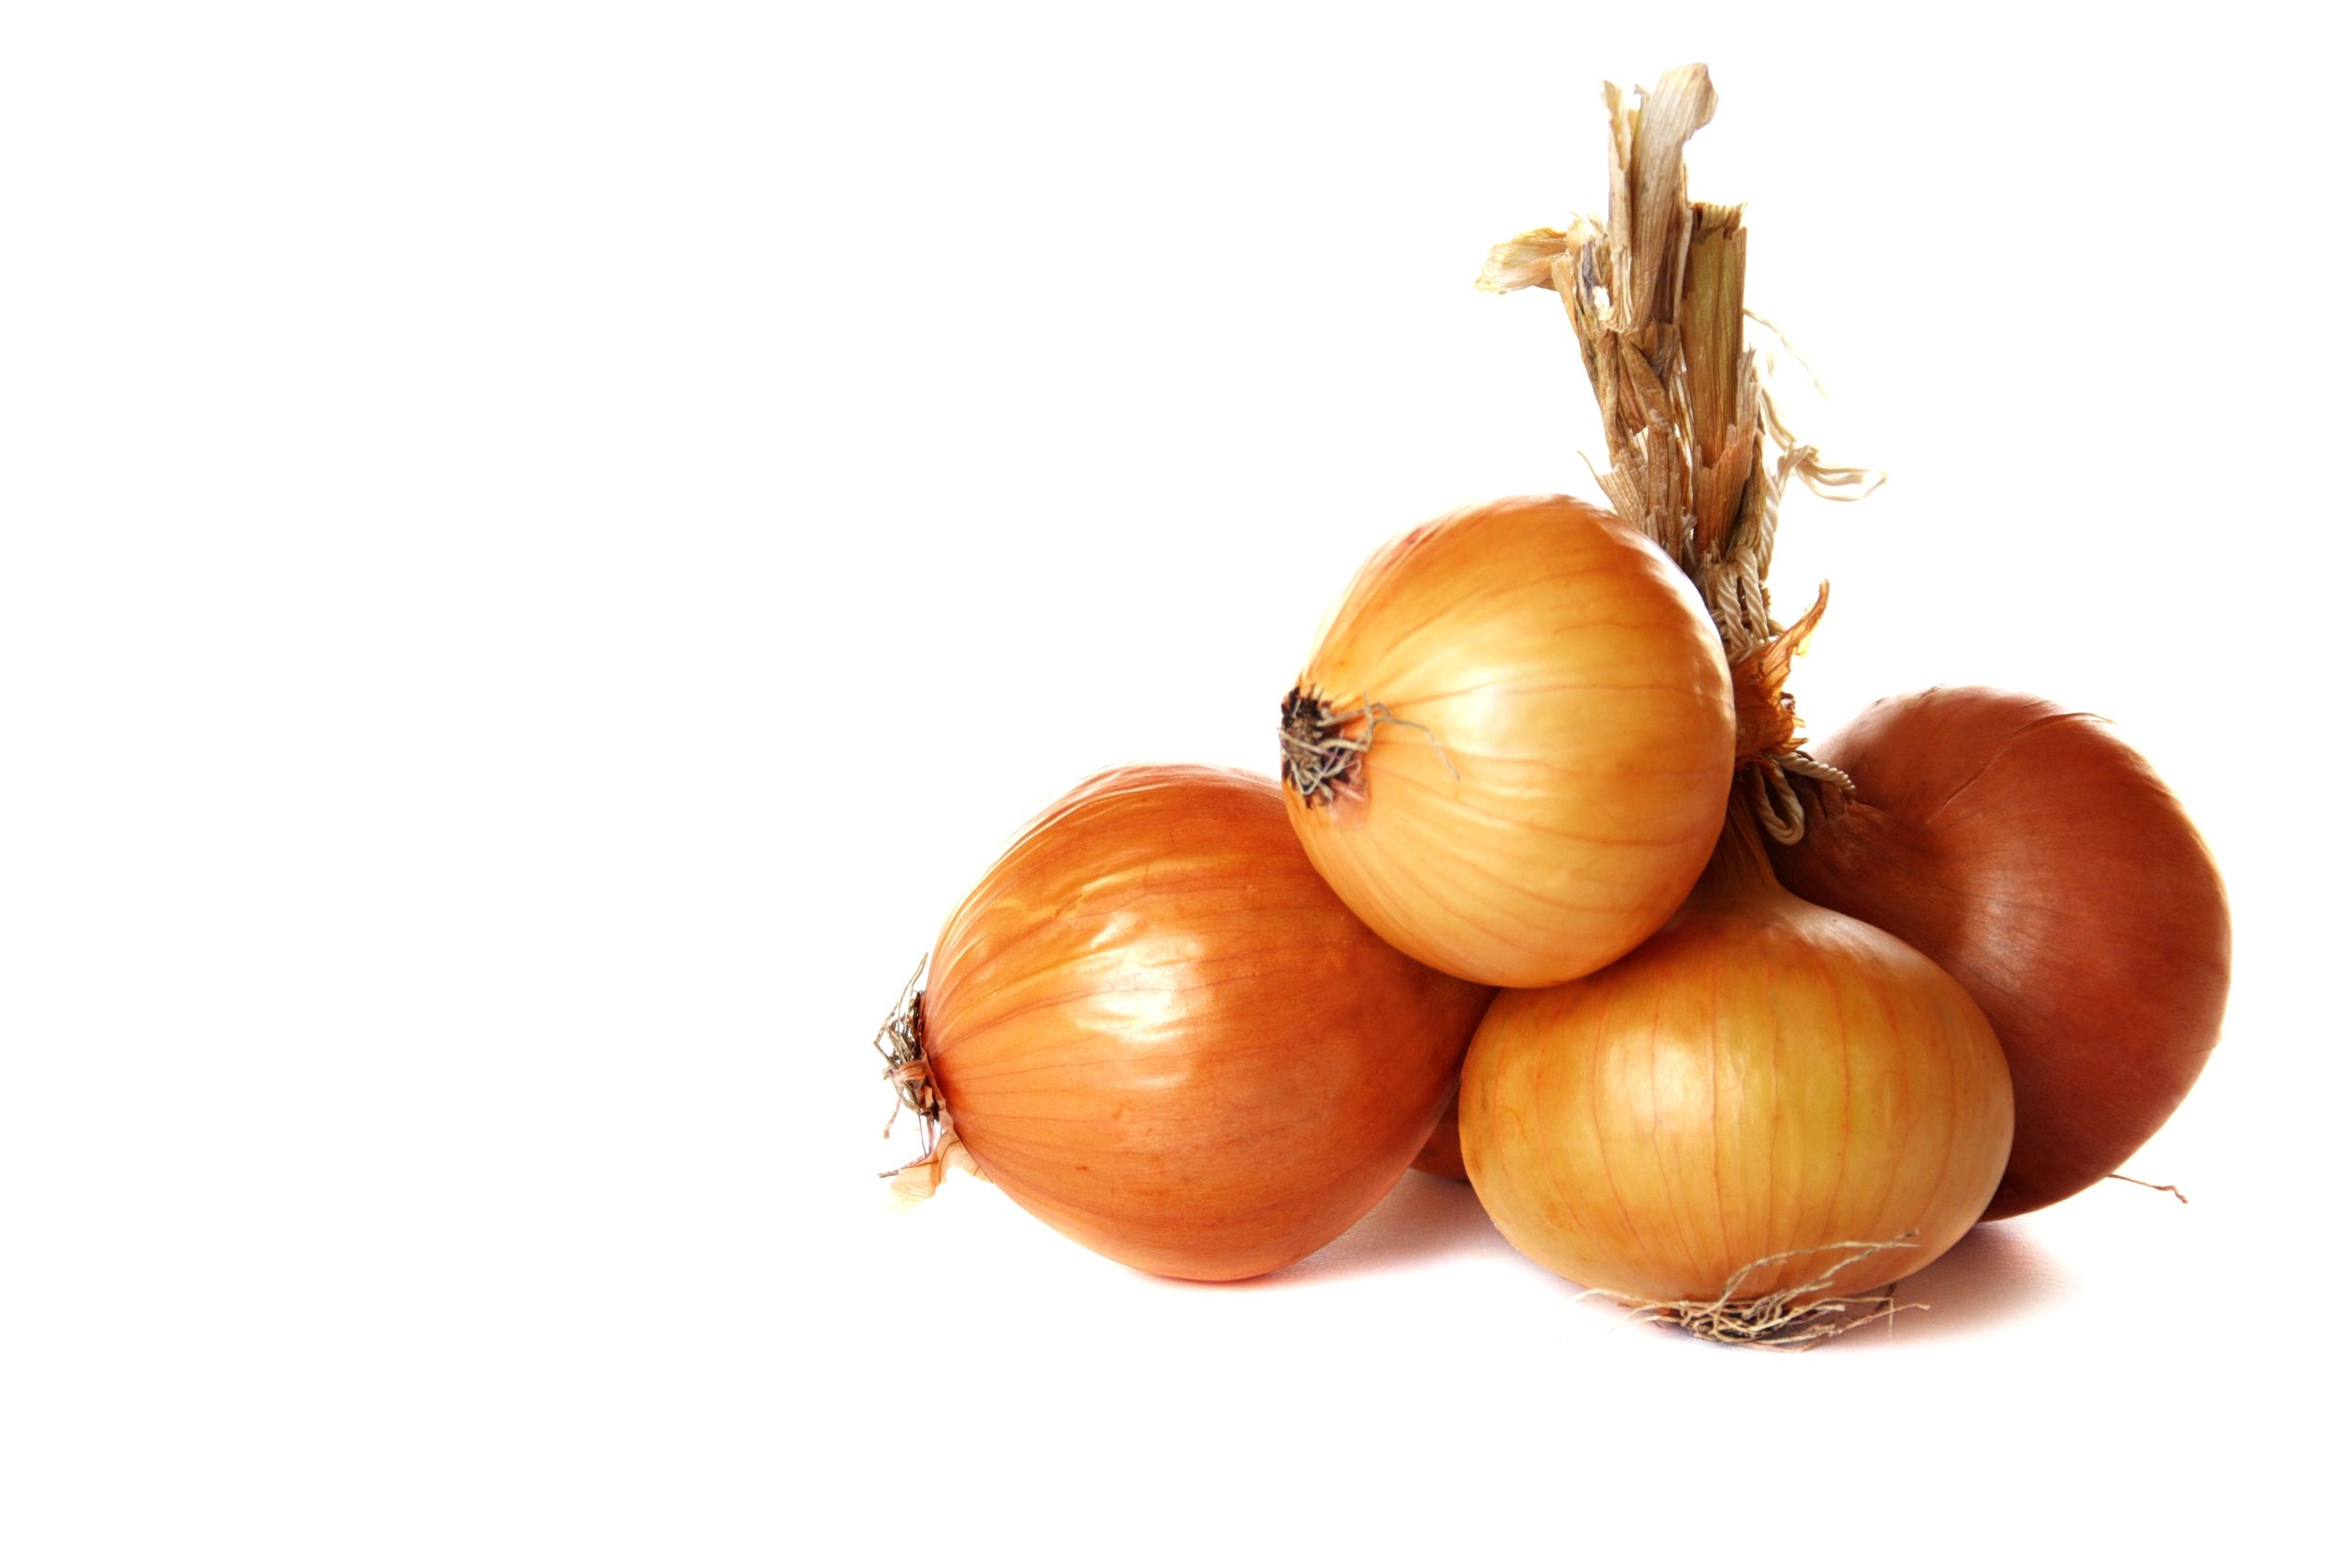 10394087 - bunch of onions on a white background.